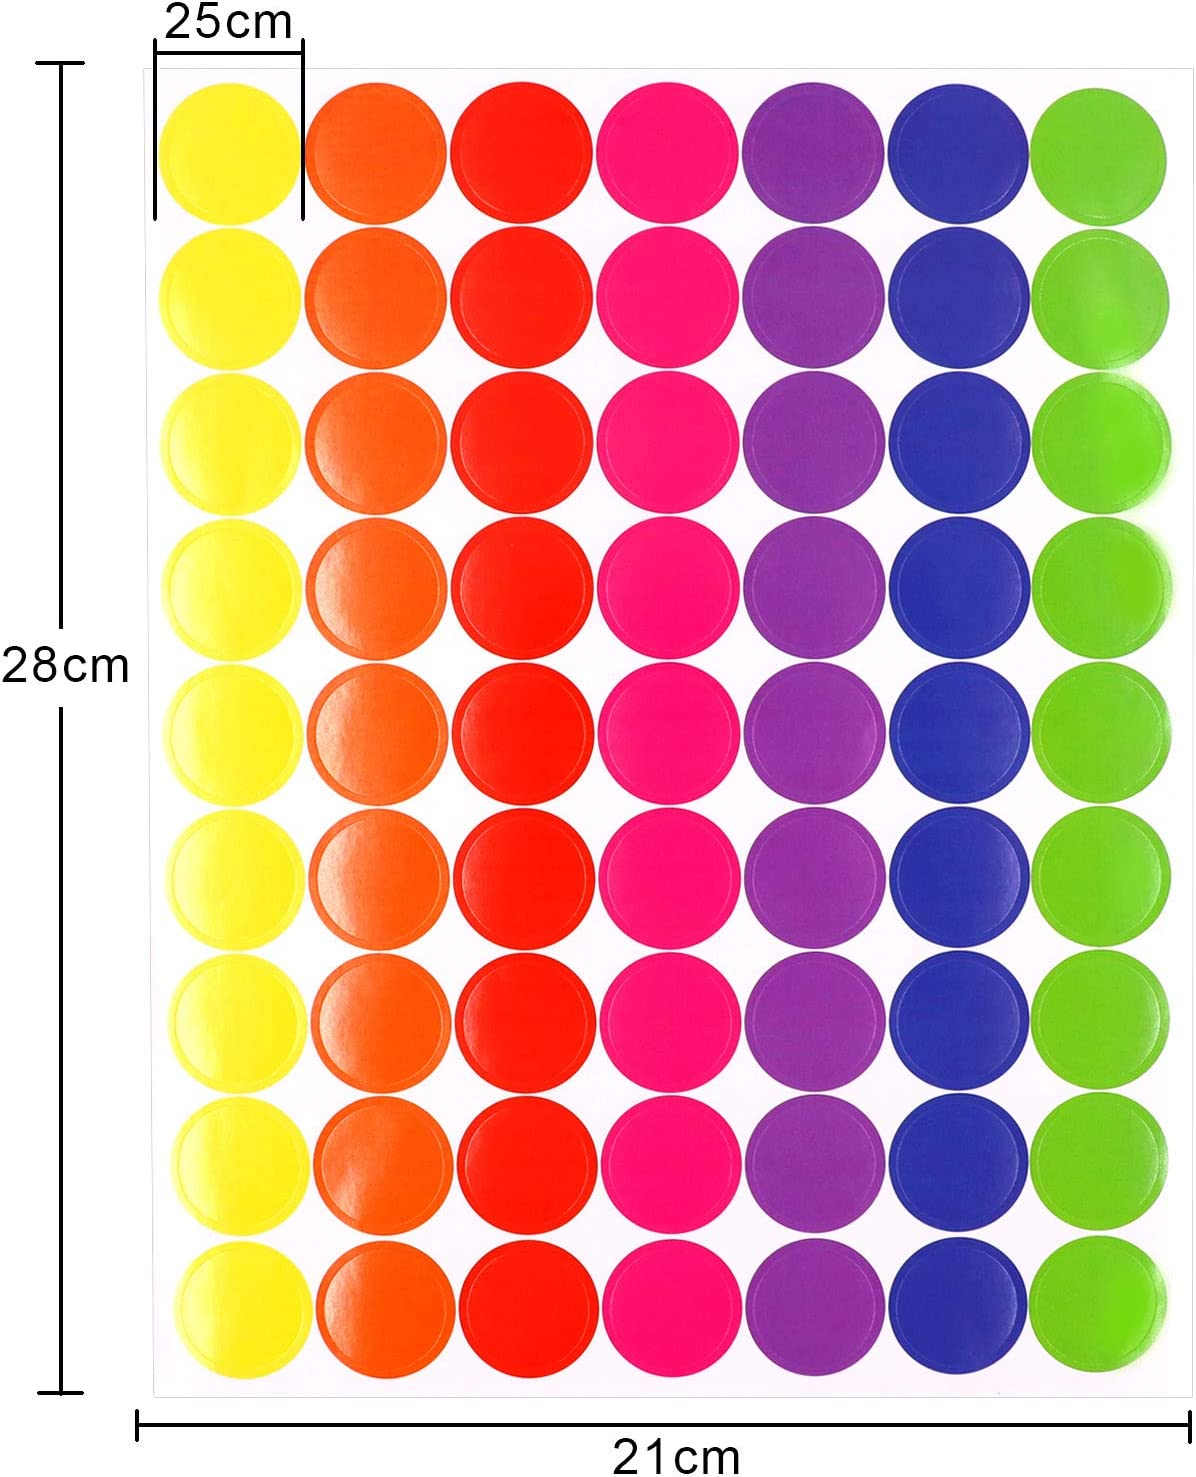 25 Sheet Pack of 1575 1-inch Colored Dots Sticker Round Color Coding Labels Circle Dot Stickers,7 Bright Neon Colors,Print or Write 8.5 x 11 Sheet